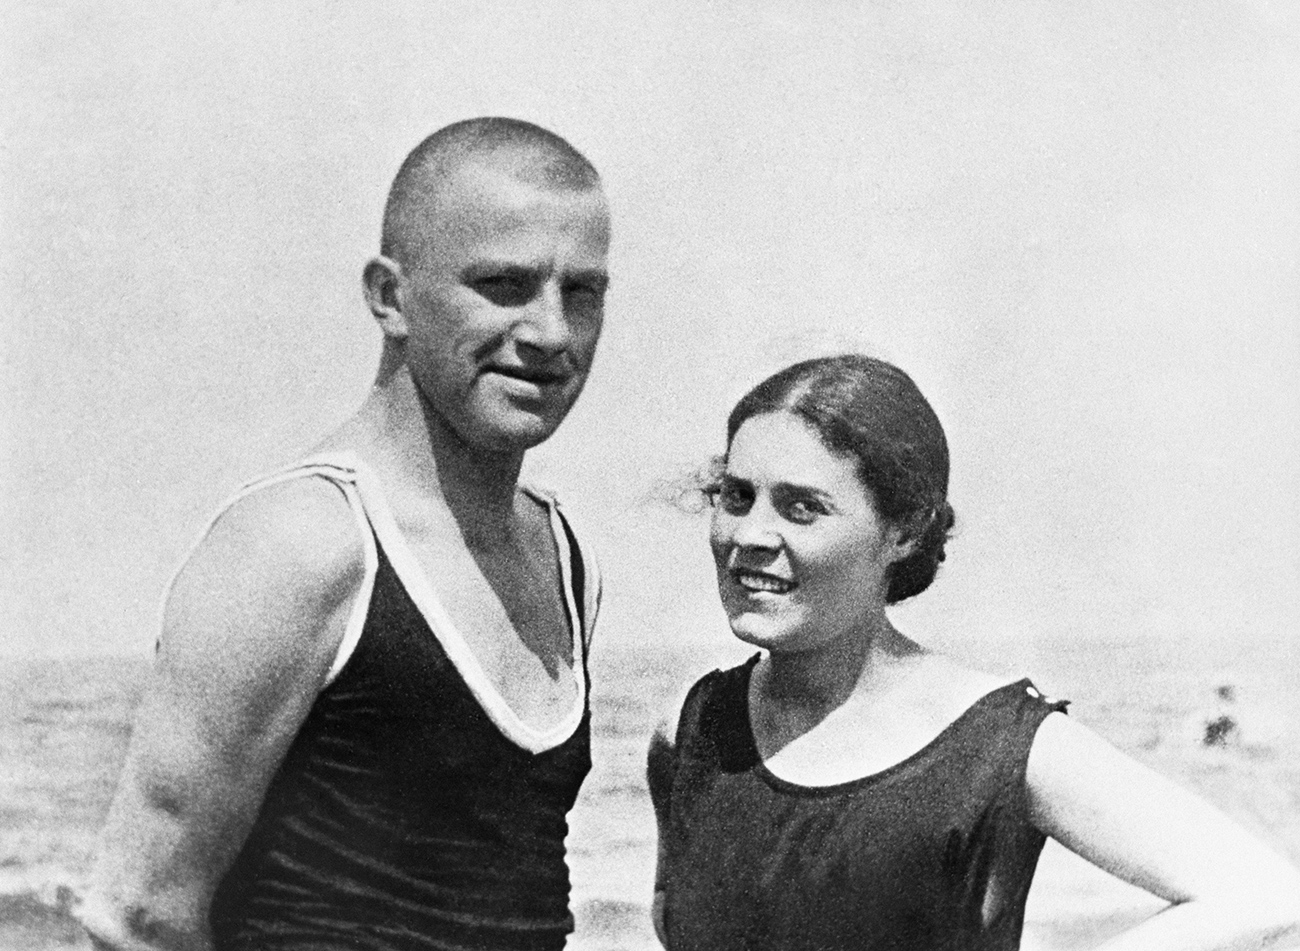 Soviet poet Vladimir Mayakovsky (1893-1930) and Lilia Brik (nee Kagan, 1891-1978) at Norden Zee in Germany in 1922.